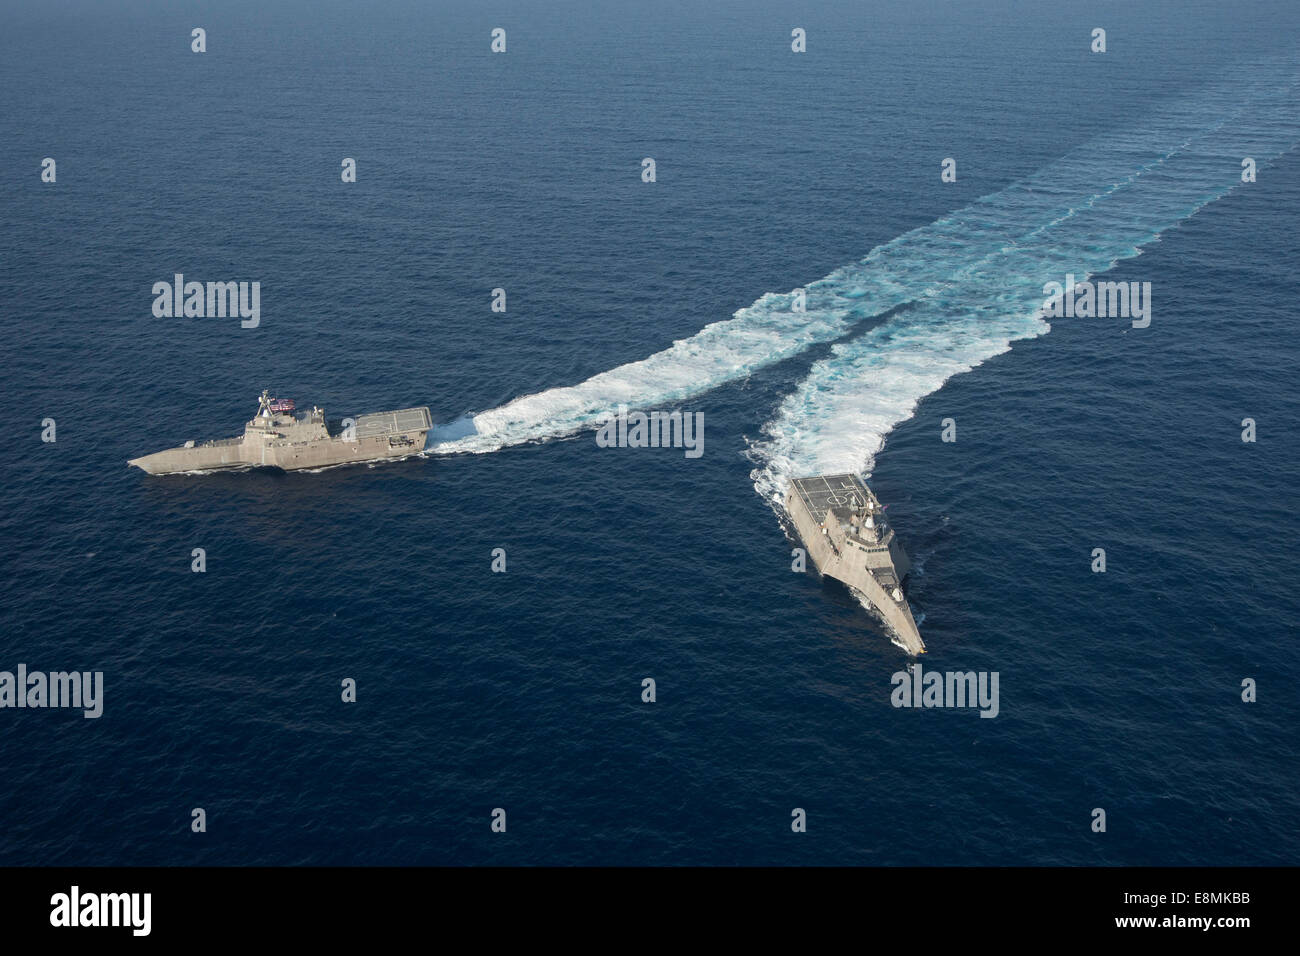 Pacific Ocean, April 23, 2014 - The littoral combat ships USS Independence (LCS 2), left, and USS Coronado (LCS - Stock Image